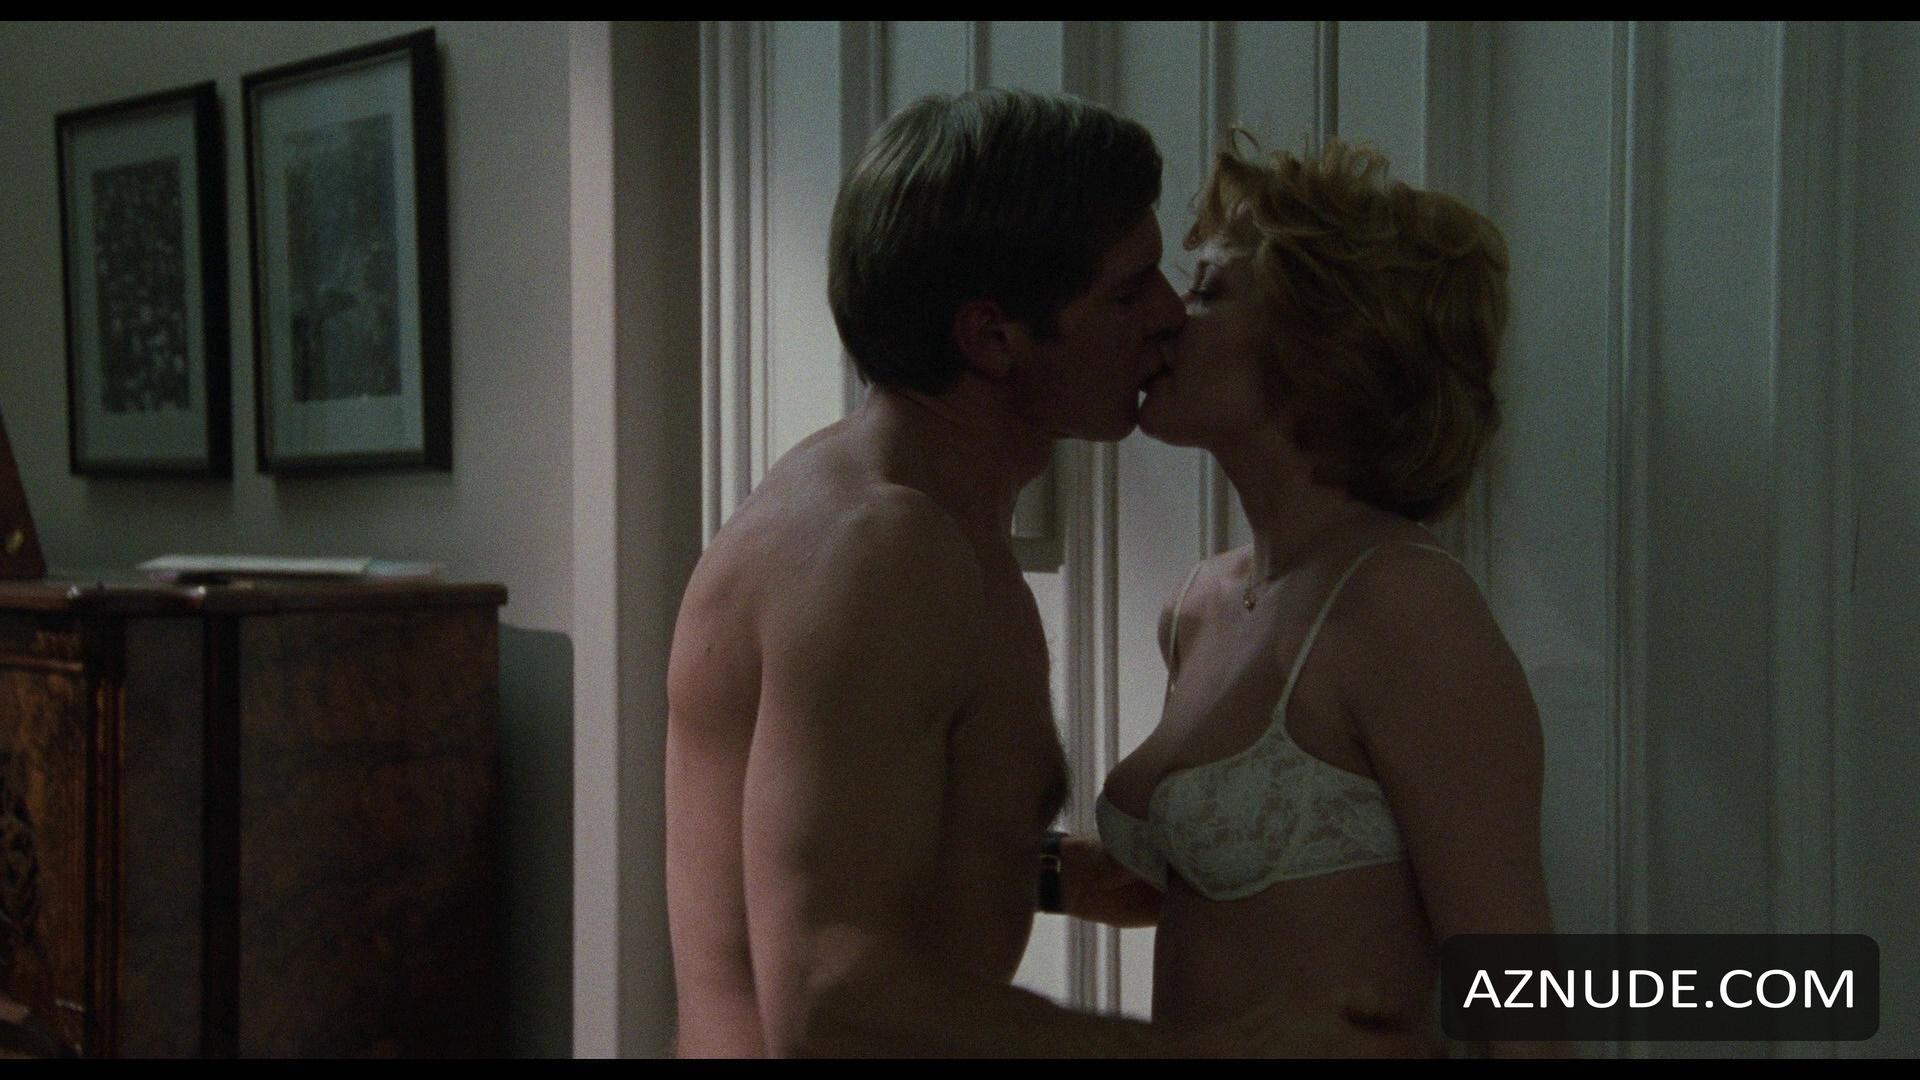 Best picture sex scenes nudity, sexiest hollywood images